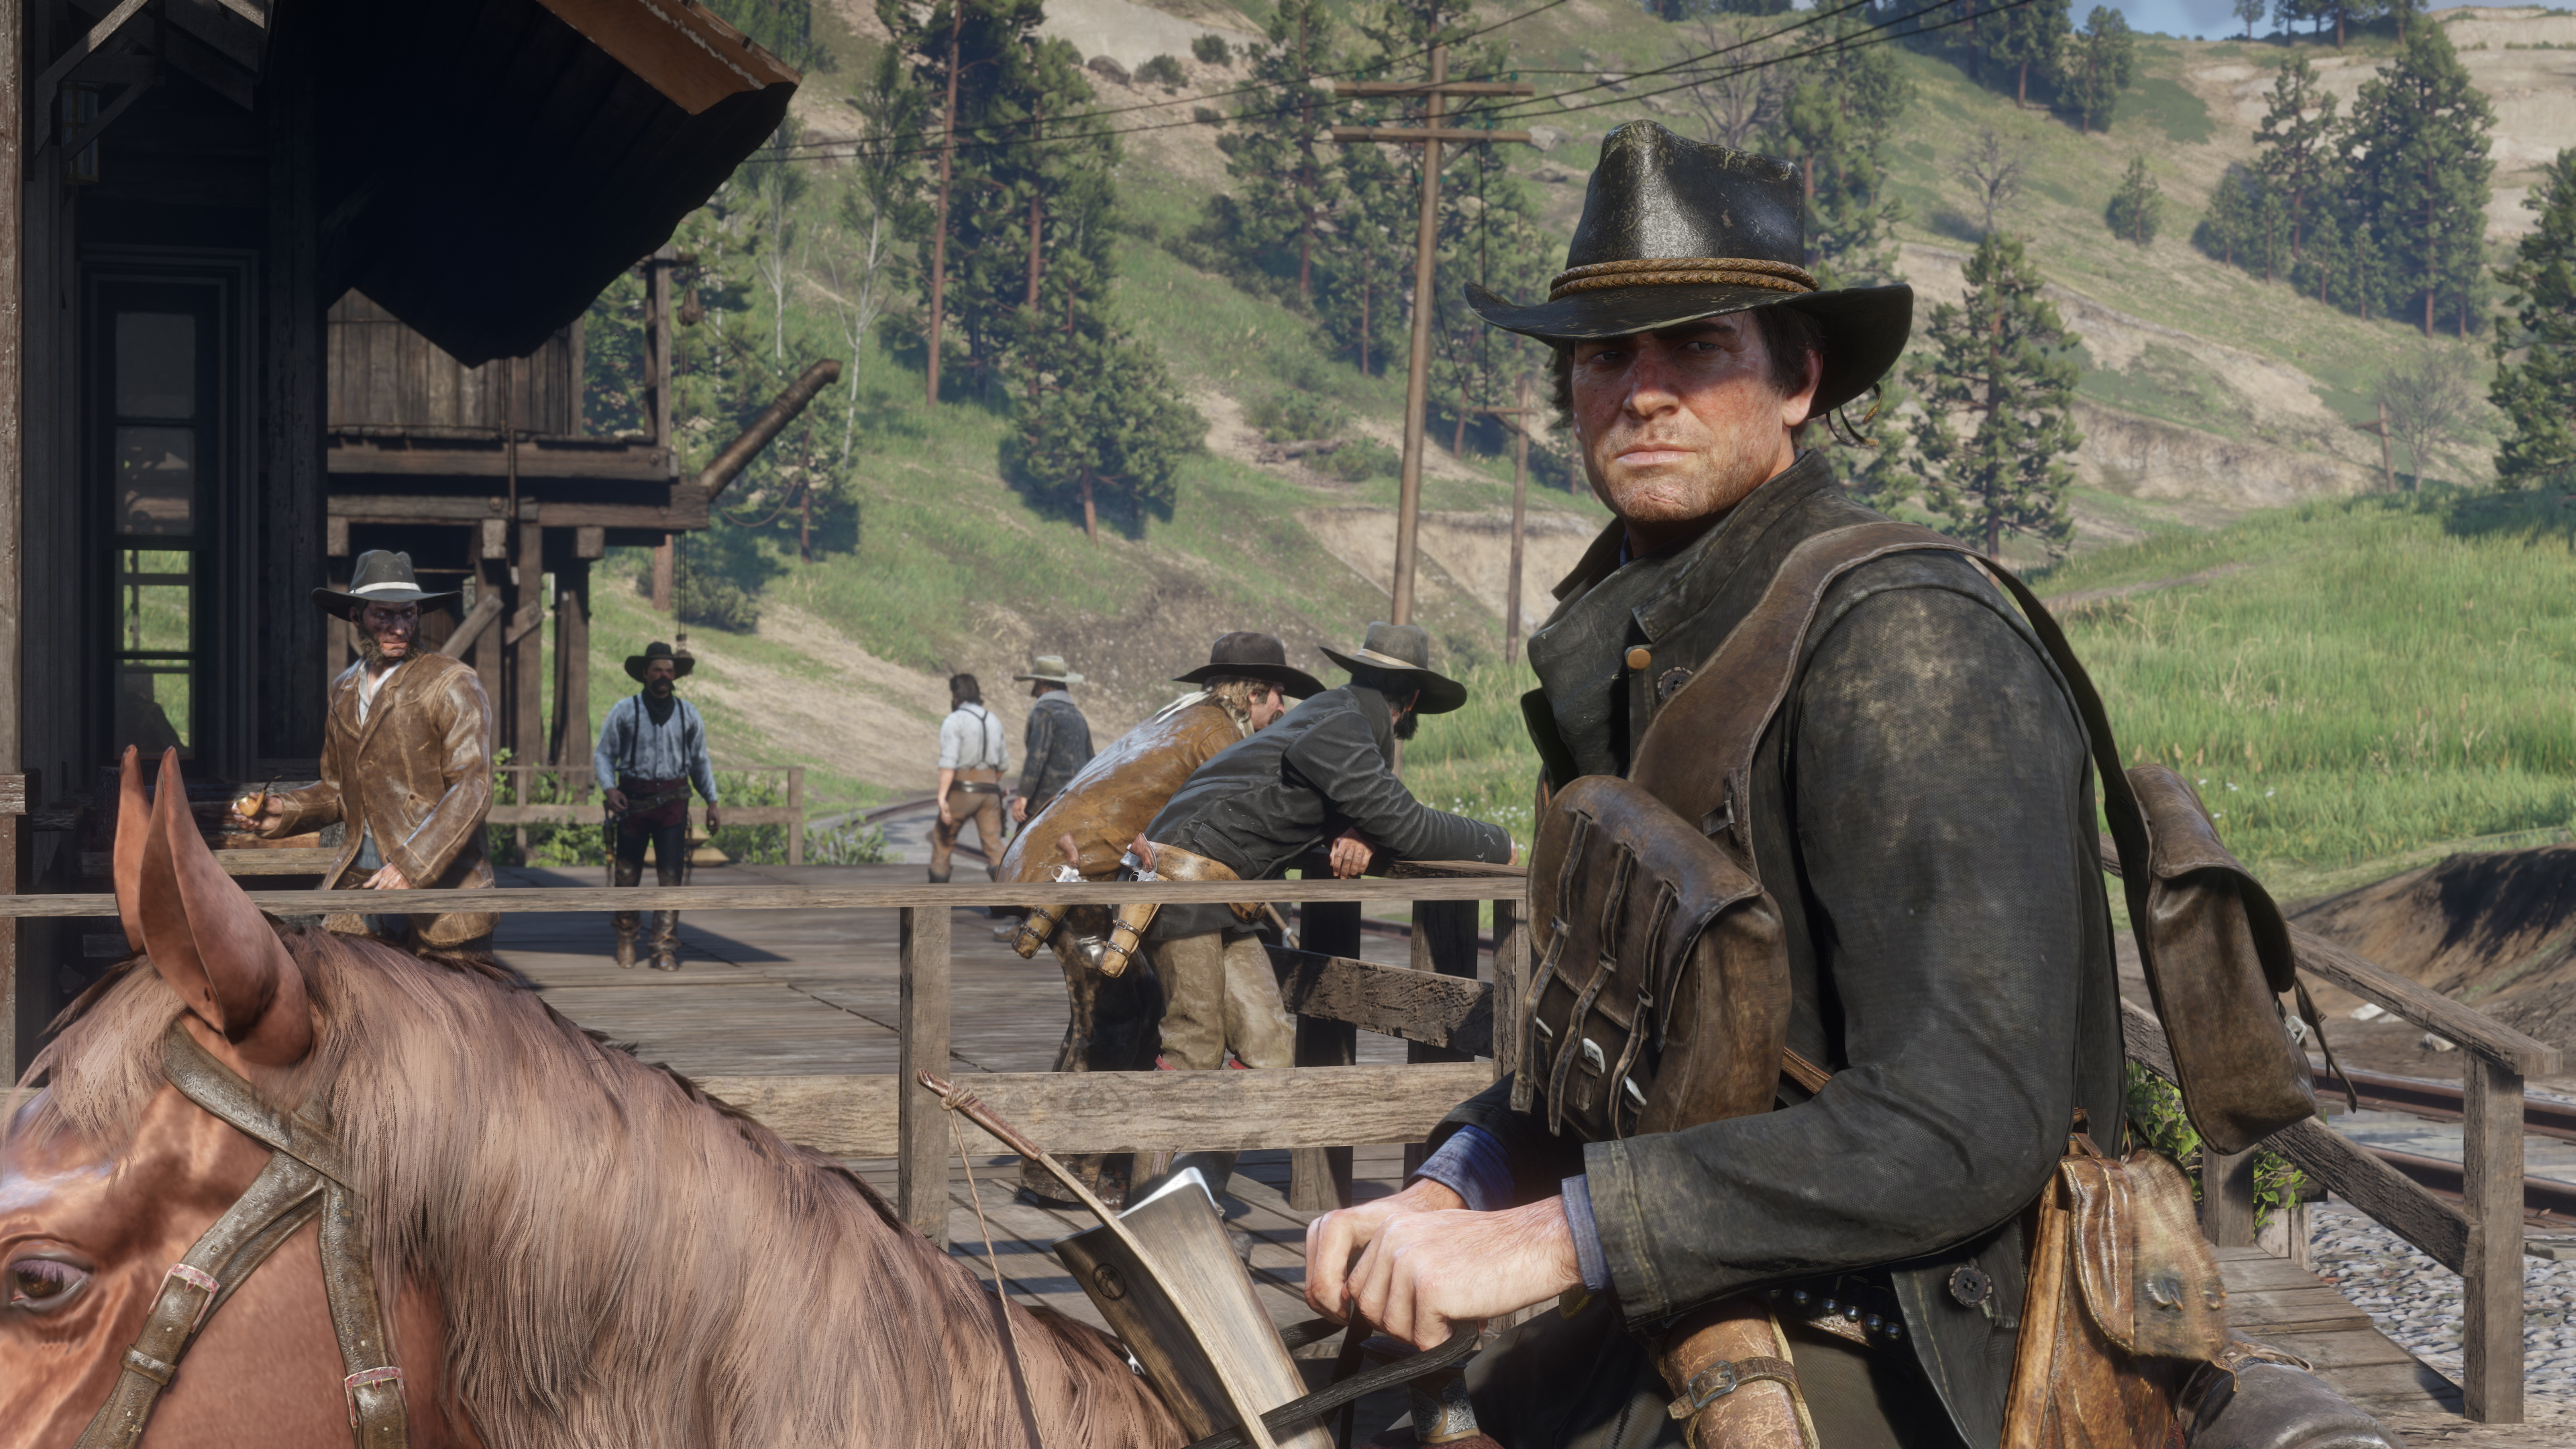 a man in a cowboy hat, Arthur Morgan, sitting on horseback riding past a wooden train platform in Red Dead Redemption 2